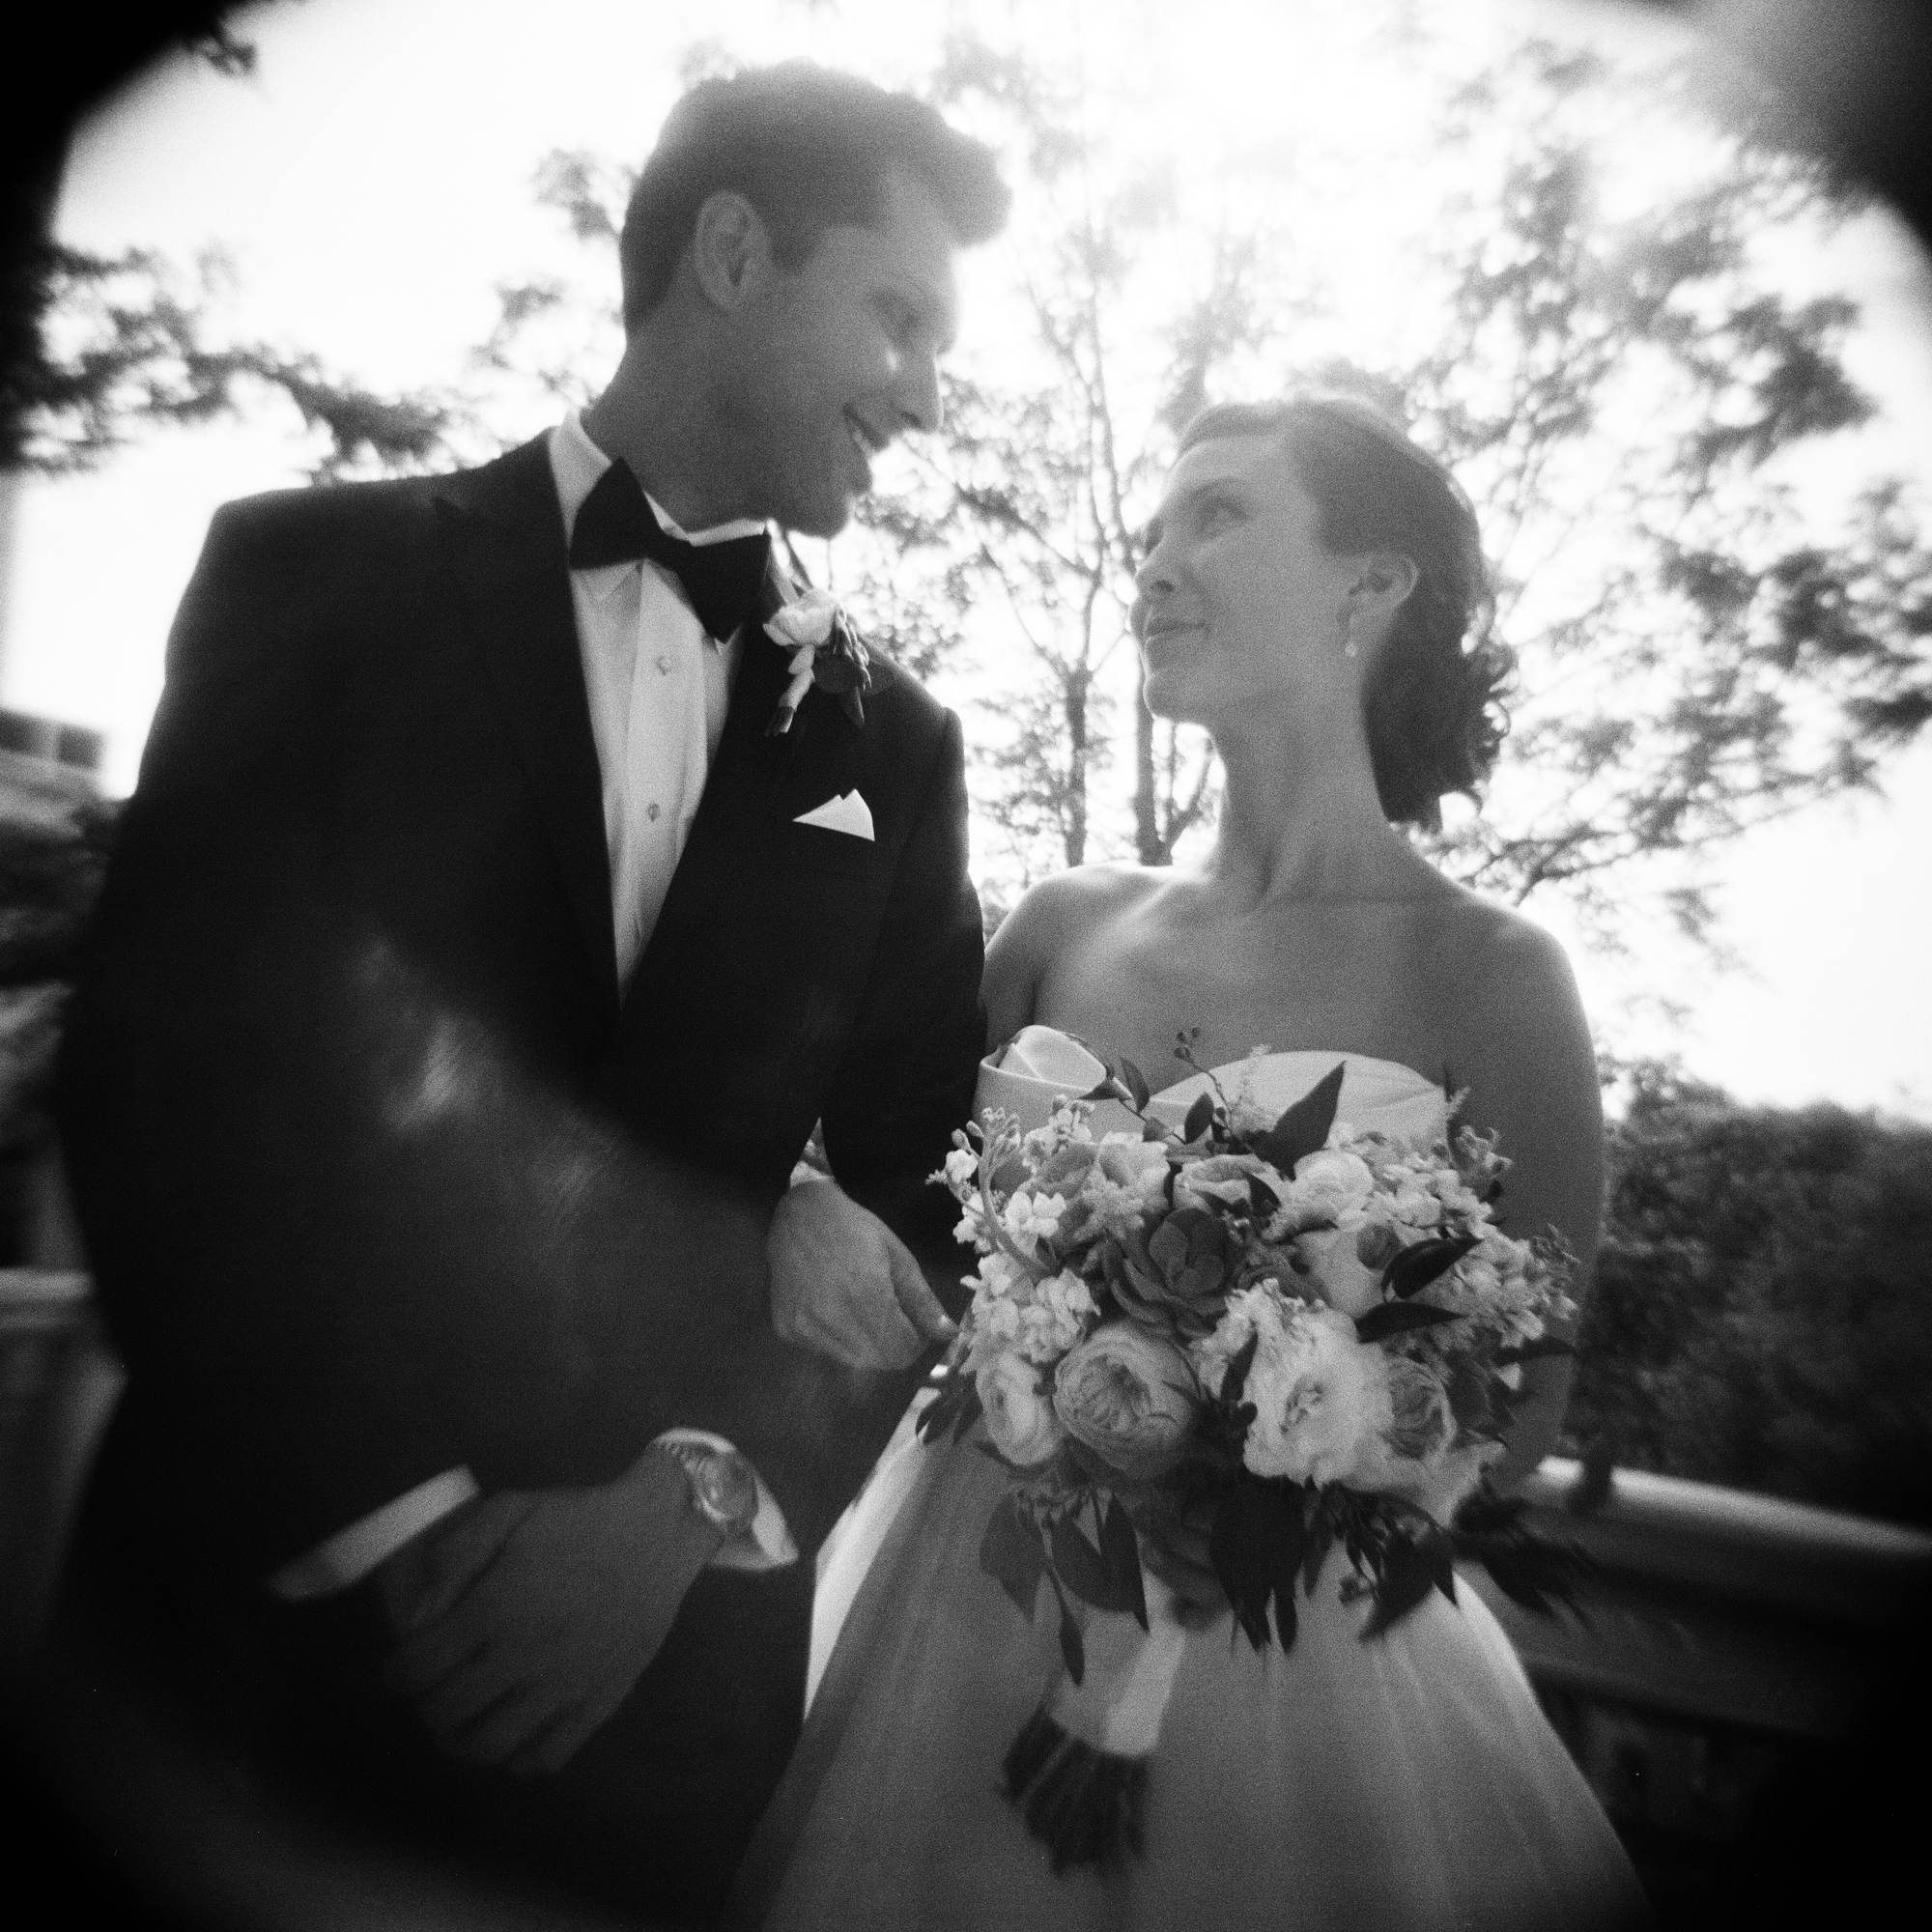 holga-wedding-photo